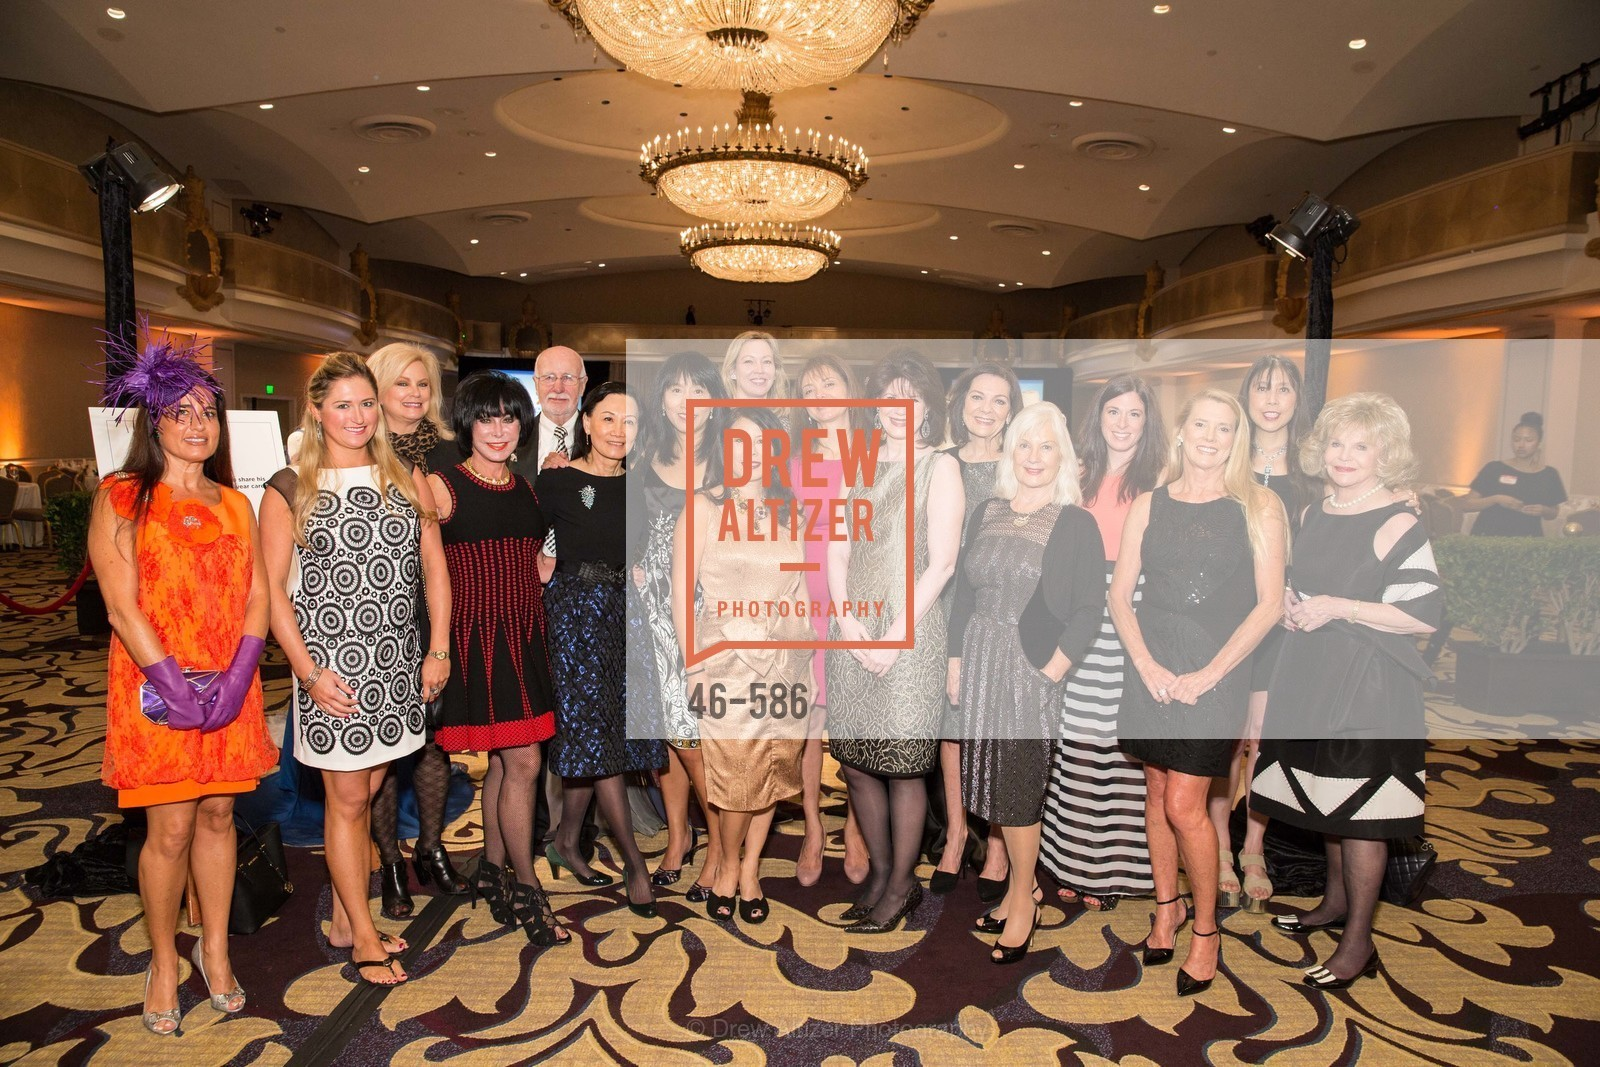 Natalia Urrutia, Chelsey Seippel, Chandra Friese, Marilyn Cabak, George Lucas, Iris Chan, Sharon Juang, Betsy Vobach, Sharon Seto, Maryam Ghajar, Elaine Mellis, Pamela Culp, Arlene Inch, Leah Pincus Sharabi, Christina DeLimur, Magdalene Chan, Marilyn Kinney, 2014 Bay Area ARTHRITIS AUXILLIARY Benefit & Fashion Show, US, October 2nd, 2014,Drew Altizer, Drew Altizer Photography, full-service agency, private events, San Francisco photographer, photographer california